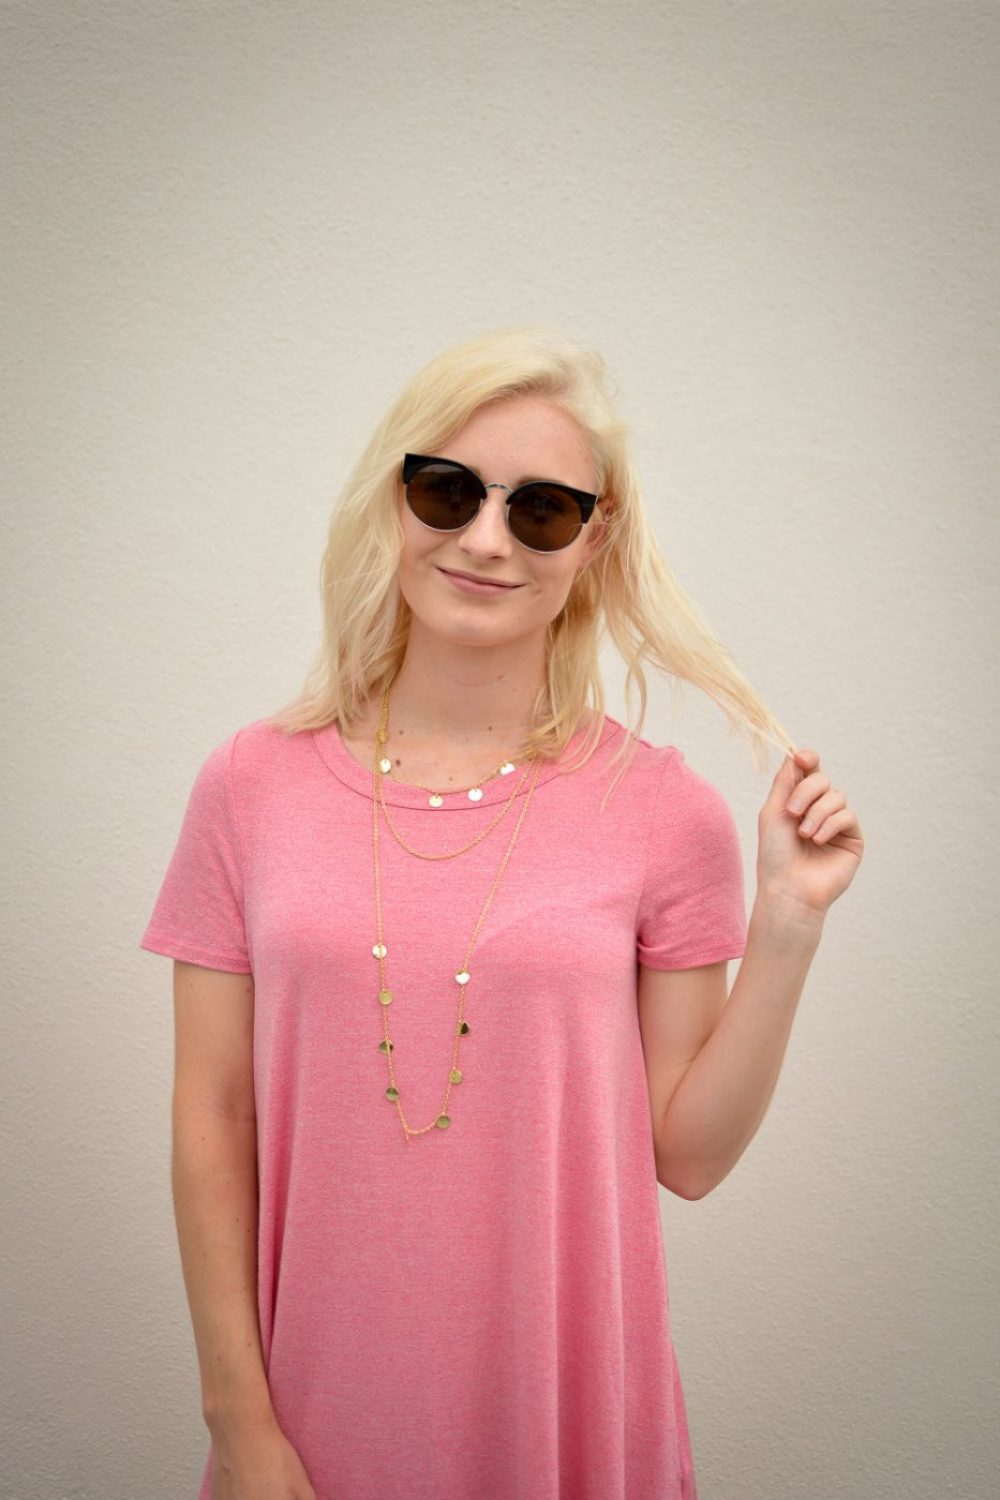 A pink t-shirt dress, come cat eye sunglasses, and lace up sandals.